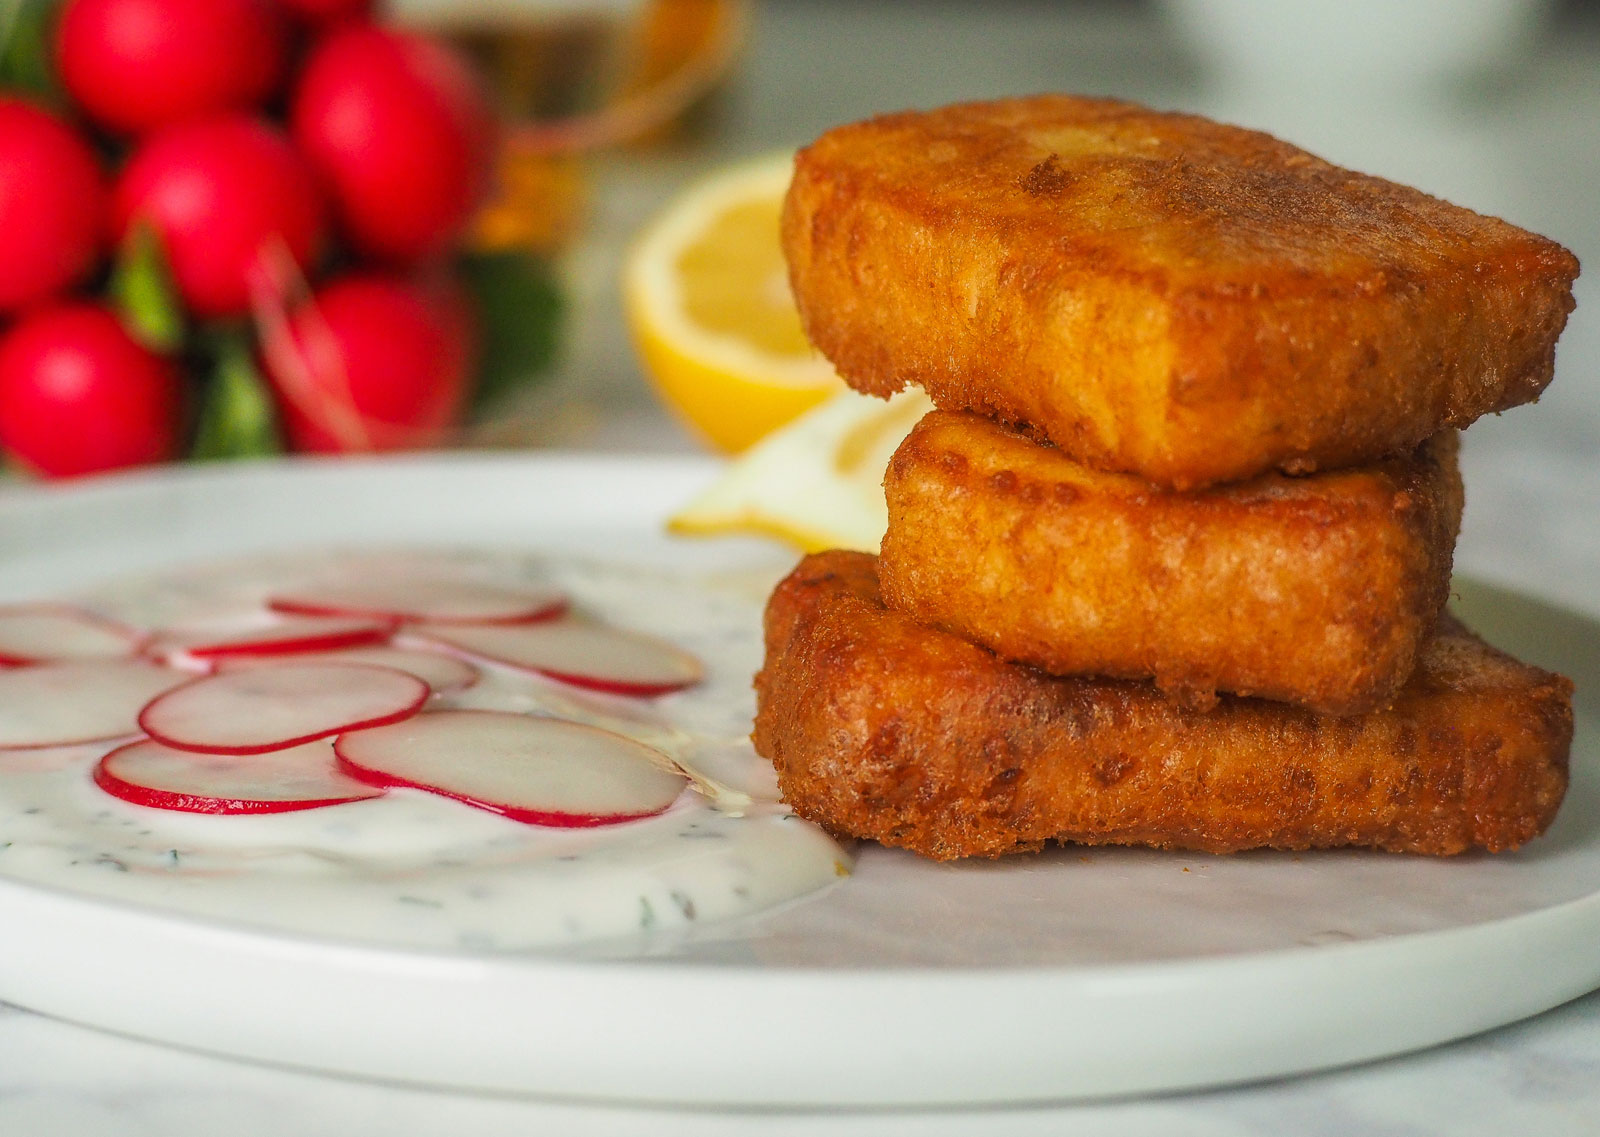 We Tried To Make The Acorn's Celebrated Deep-Fried Halloumi Dish at Home